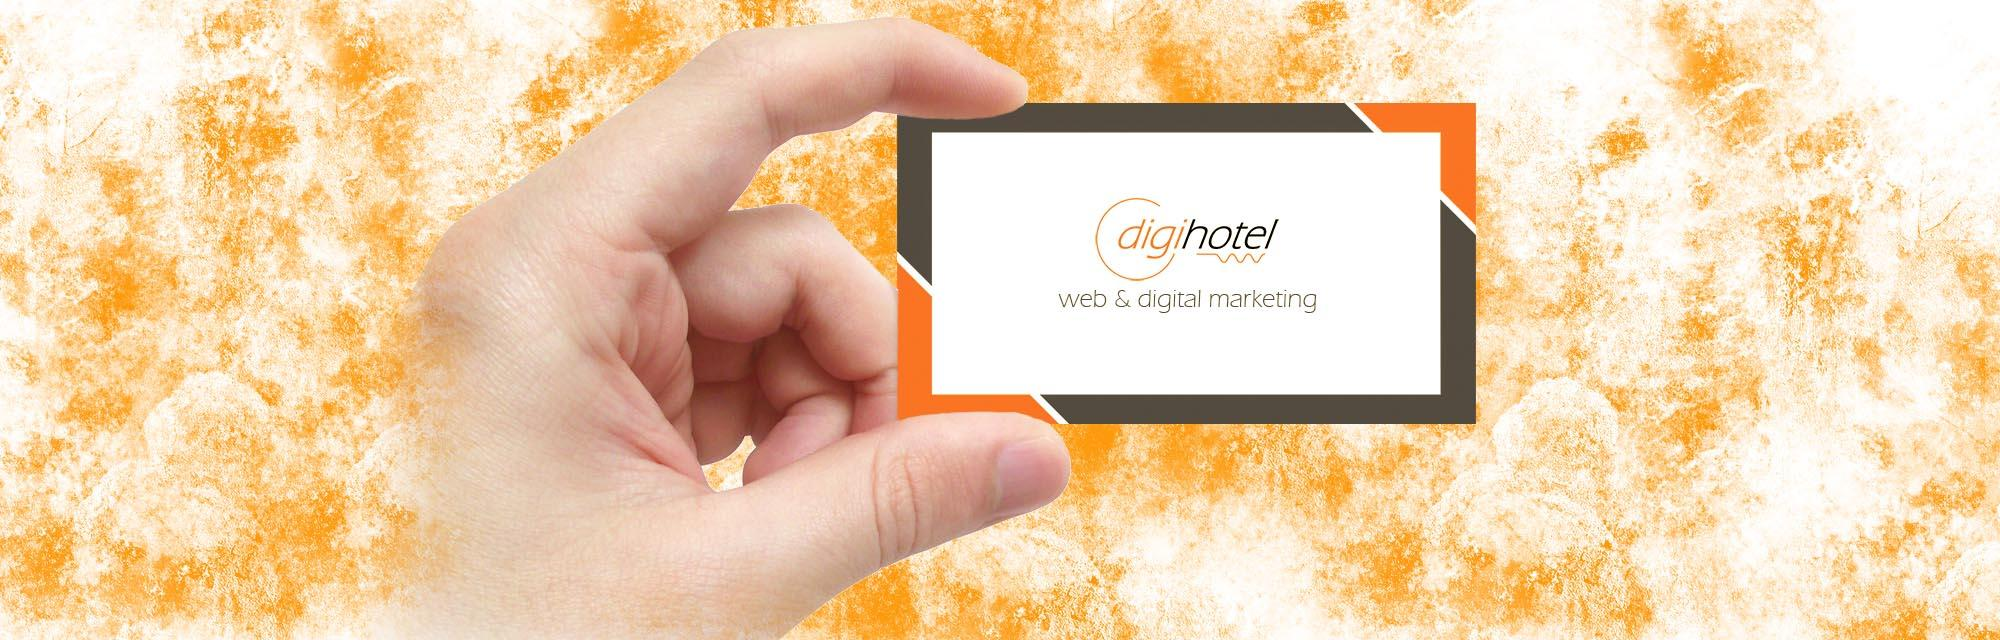 Web marketing e consulenza per hotel